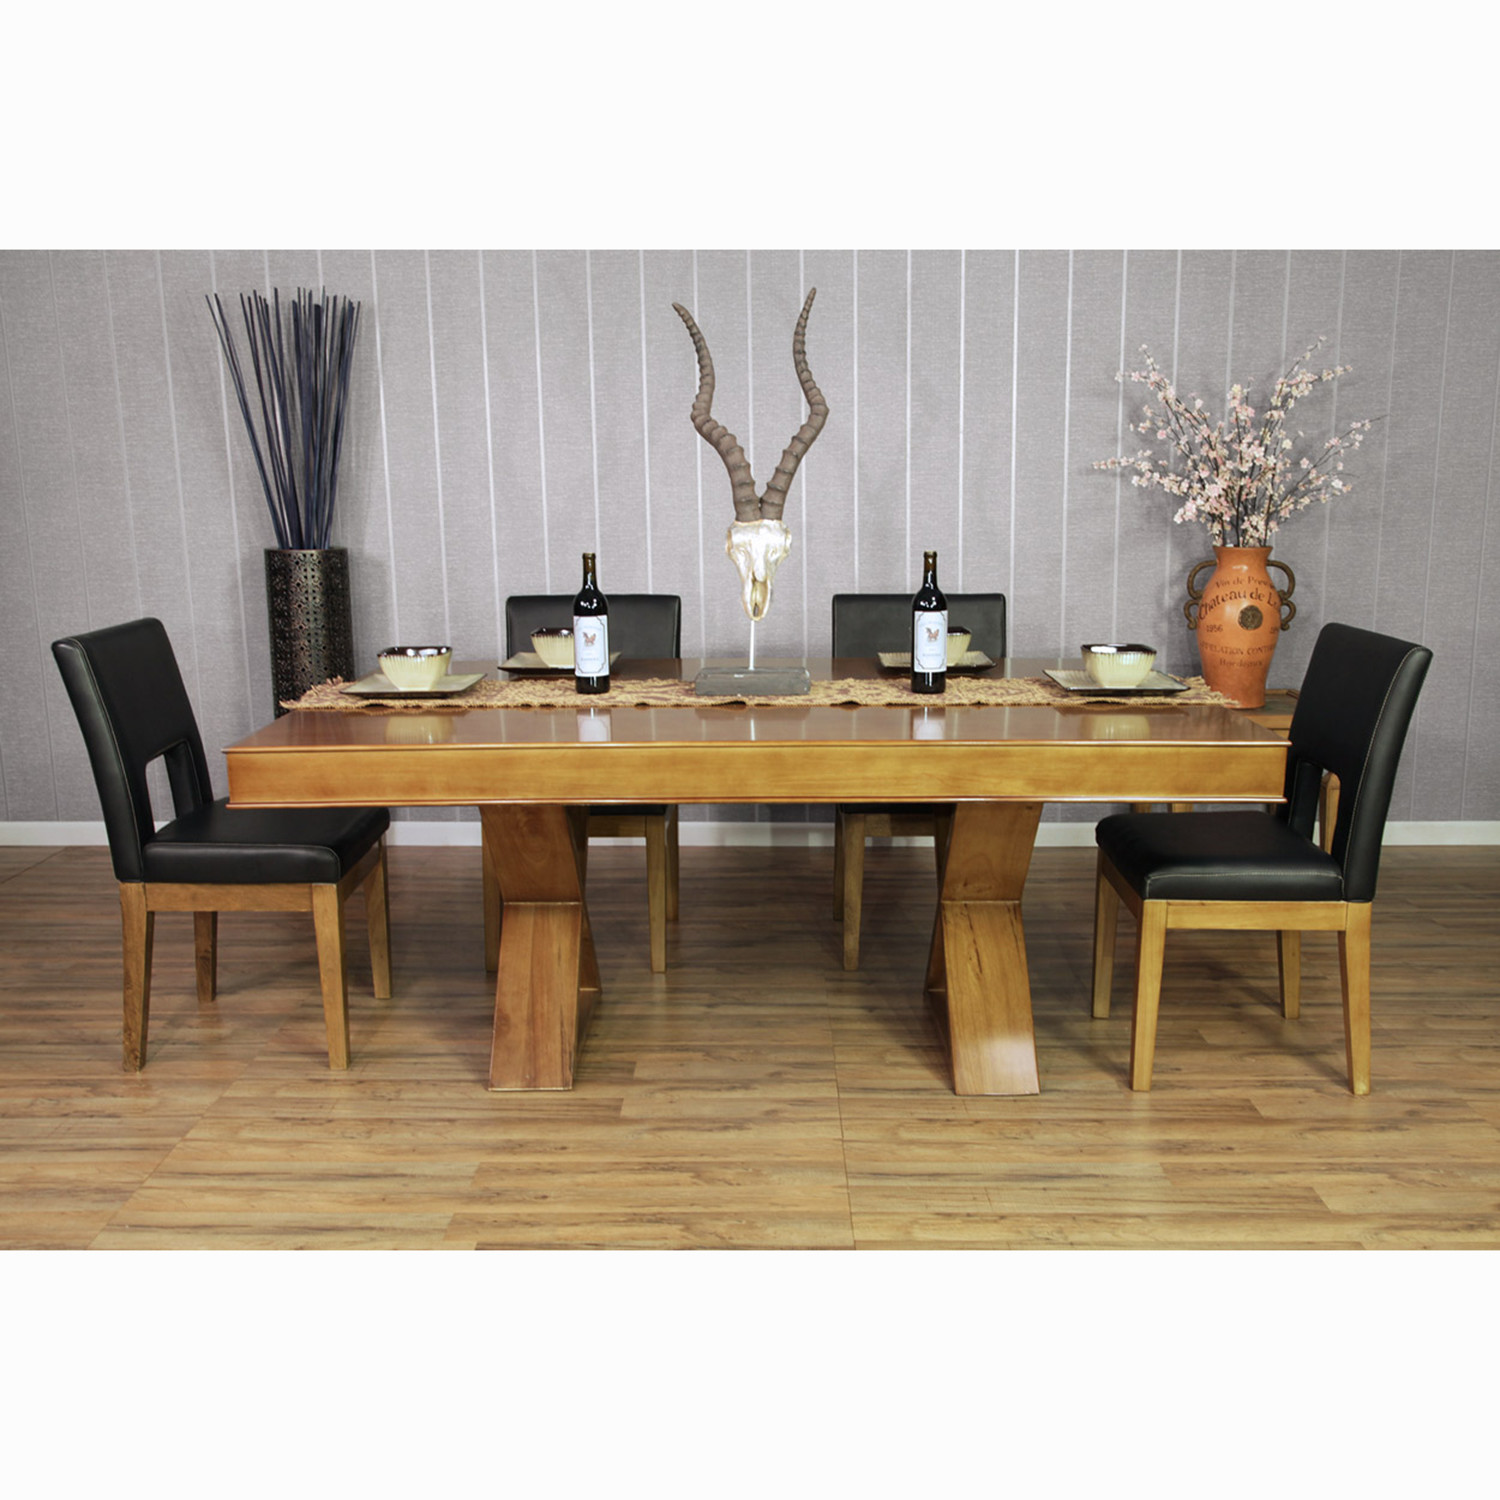 Helmsley Poker Dining Table Red Table 4 Dining Chairs BBO